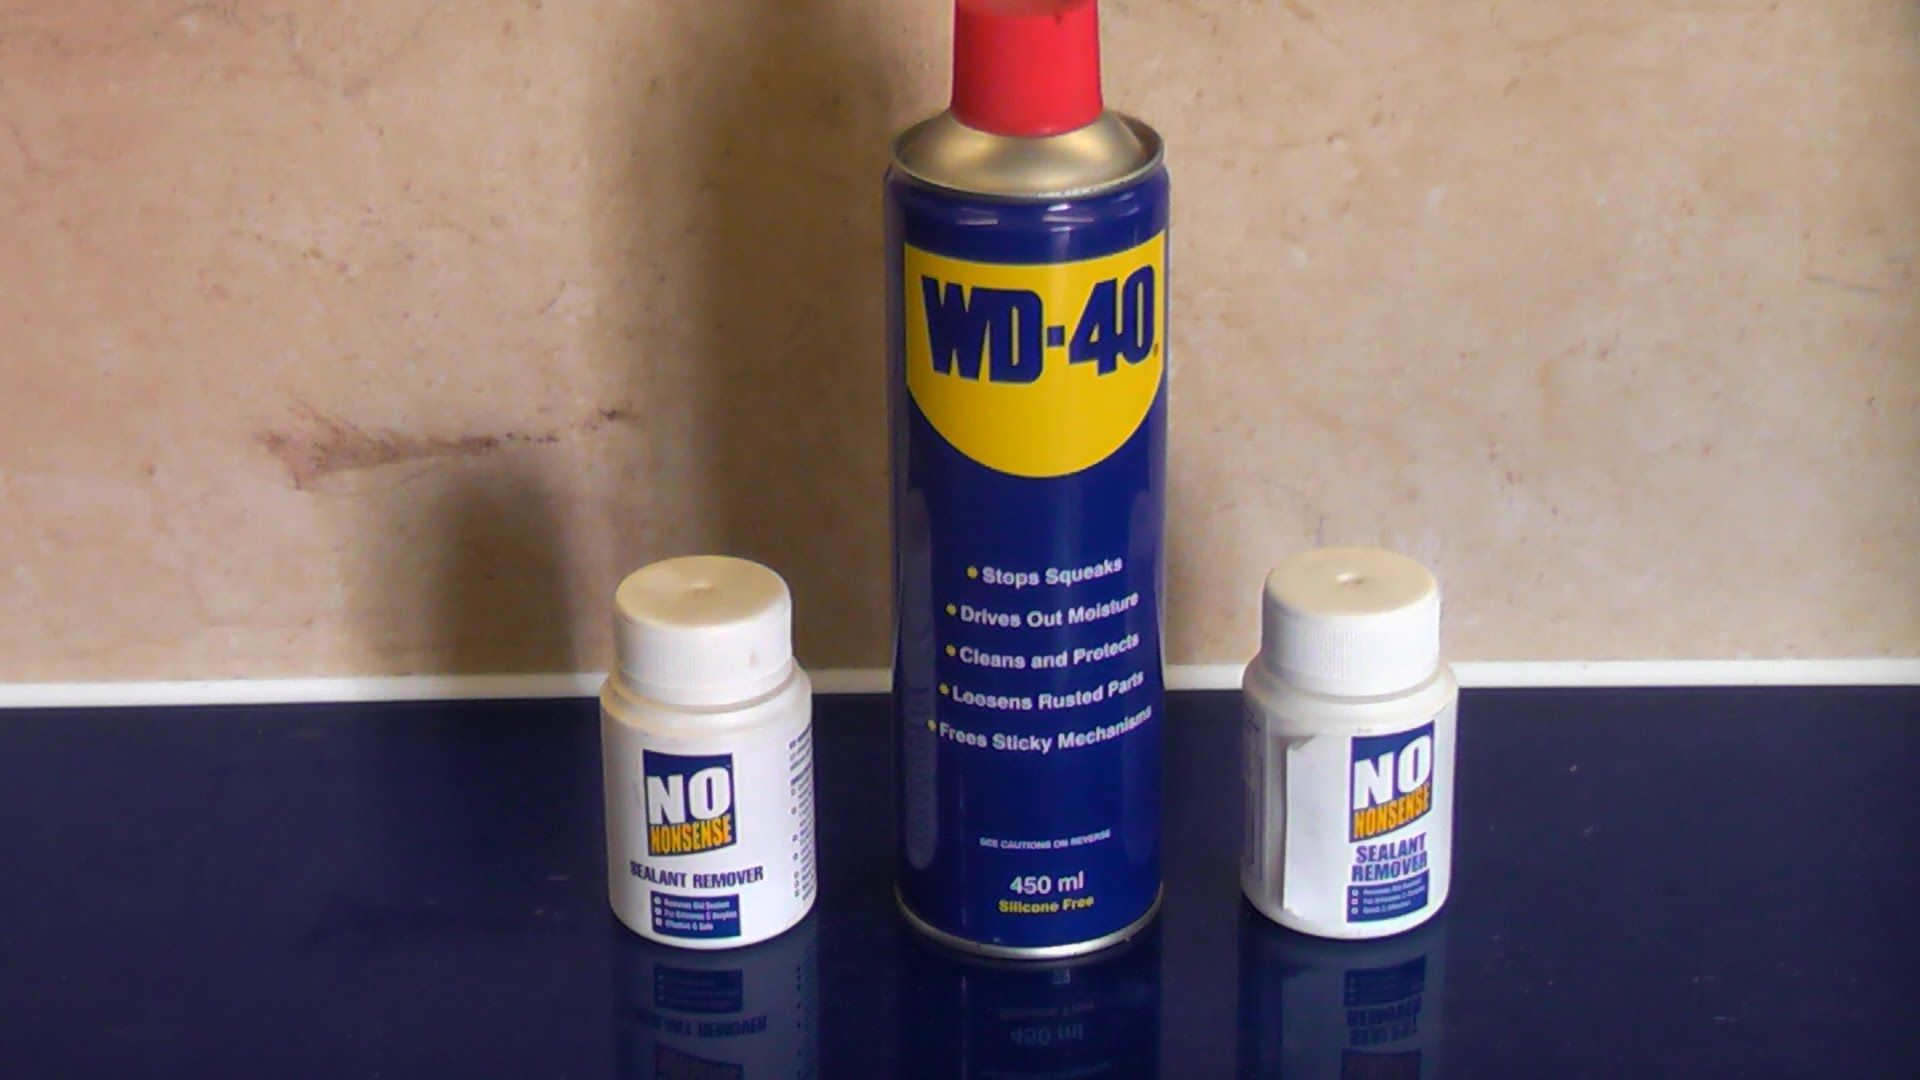 Wd 40 Versus Silicone Remover For Caulk Remover Wd 40 Home Repair Useful Life Hacks